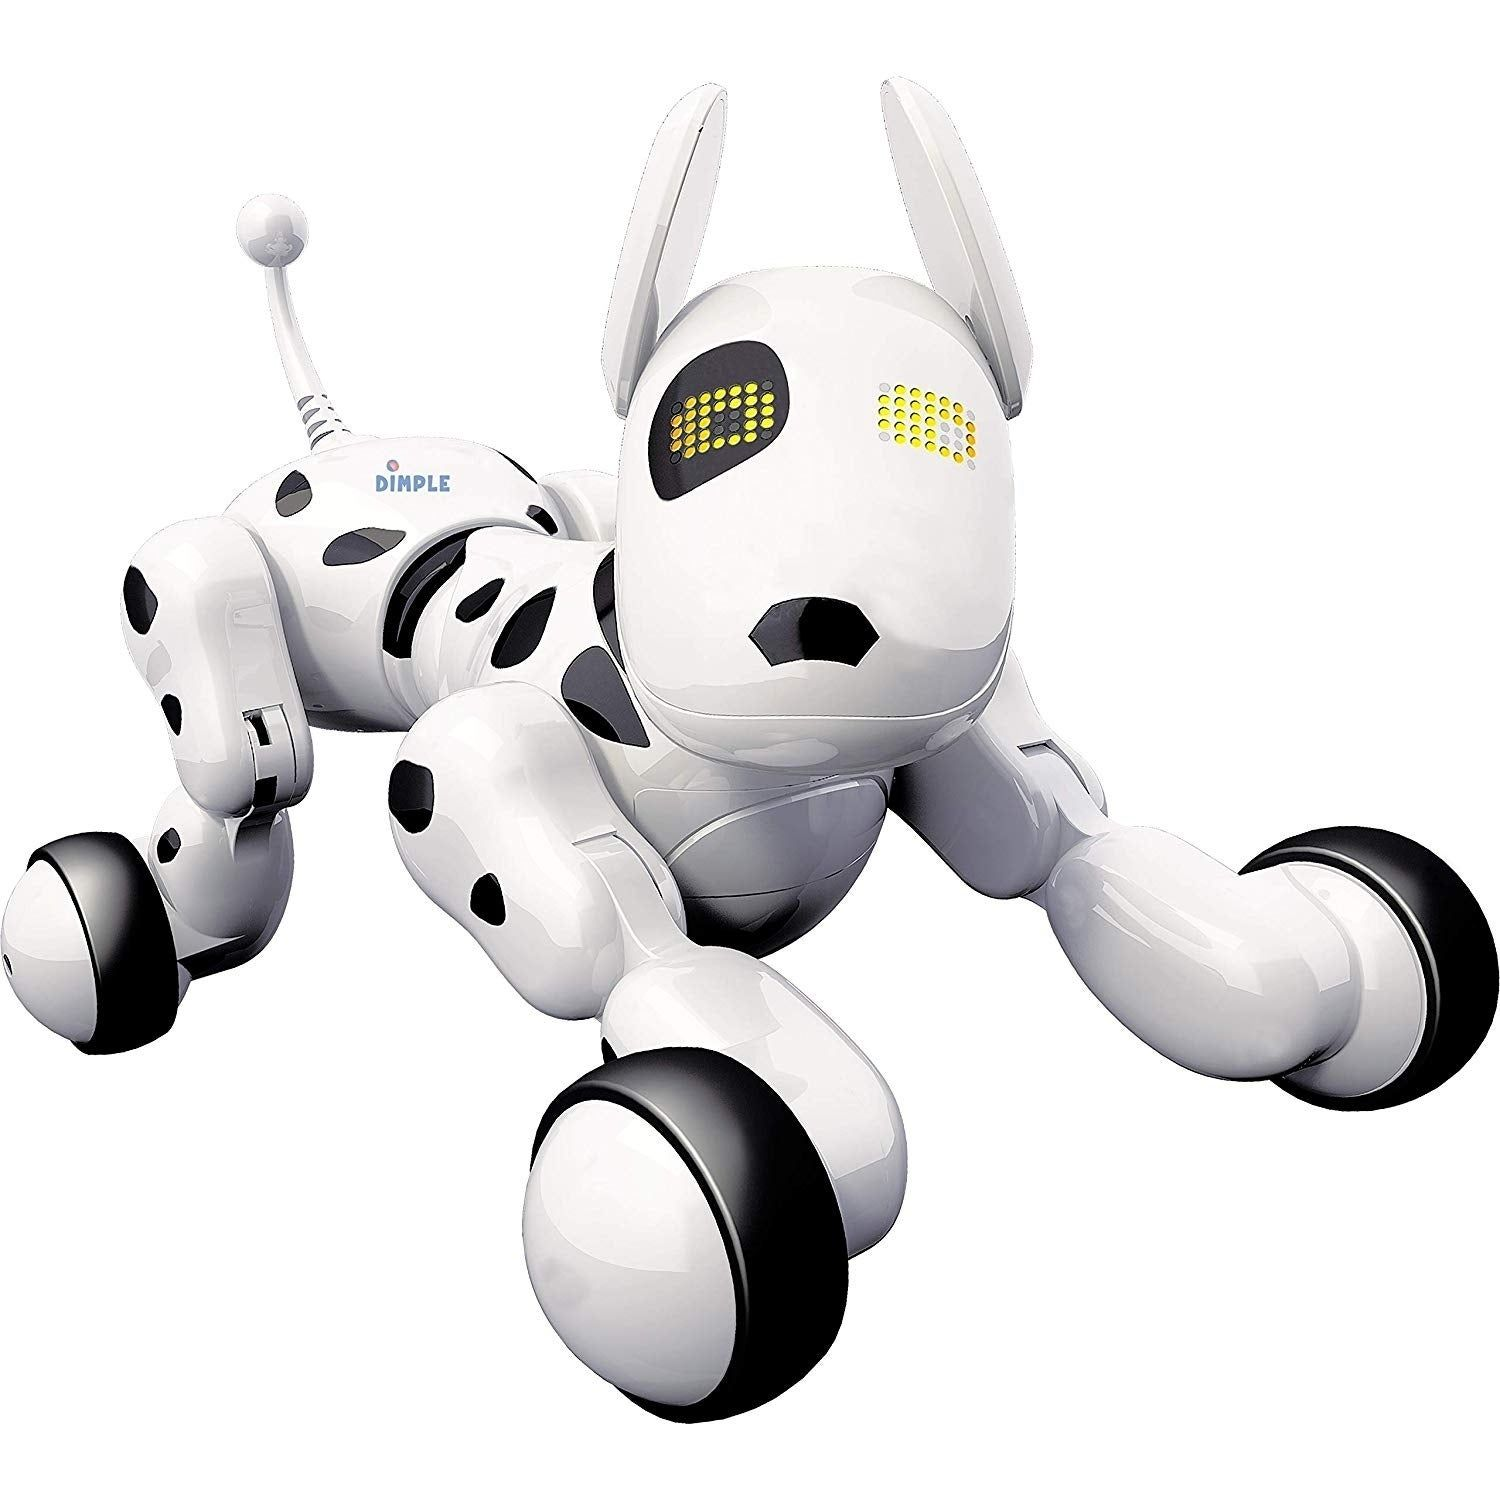 Dimple Interactive Wireless Remote Control Puppy Toy For Kids